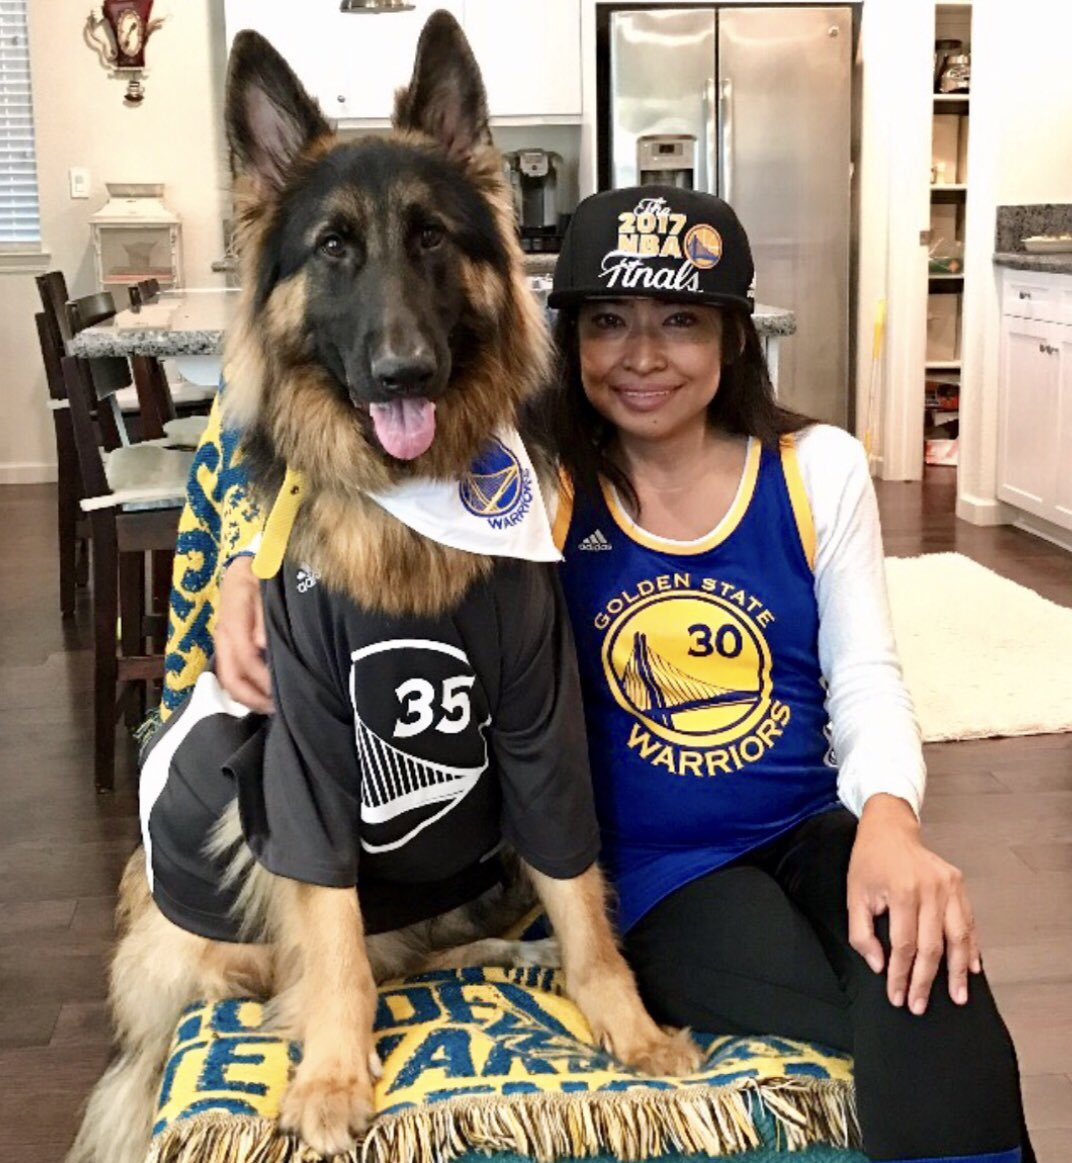 <div class='meta'><div class='origin-logo' data-origin='none'></div><span class='caption-text' data-credit='@eleanoraguila/Twitter'>Eleanor Aguila is seen wearing her Warriors gear next to her dog ahead of Game 1 of the NBA Playoffs against the Spurs on Saturday, April 14, 2018.</span></div>